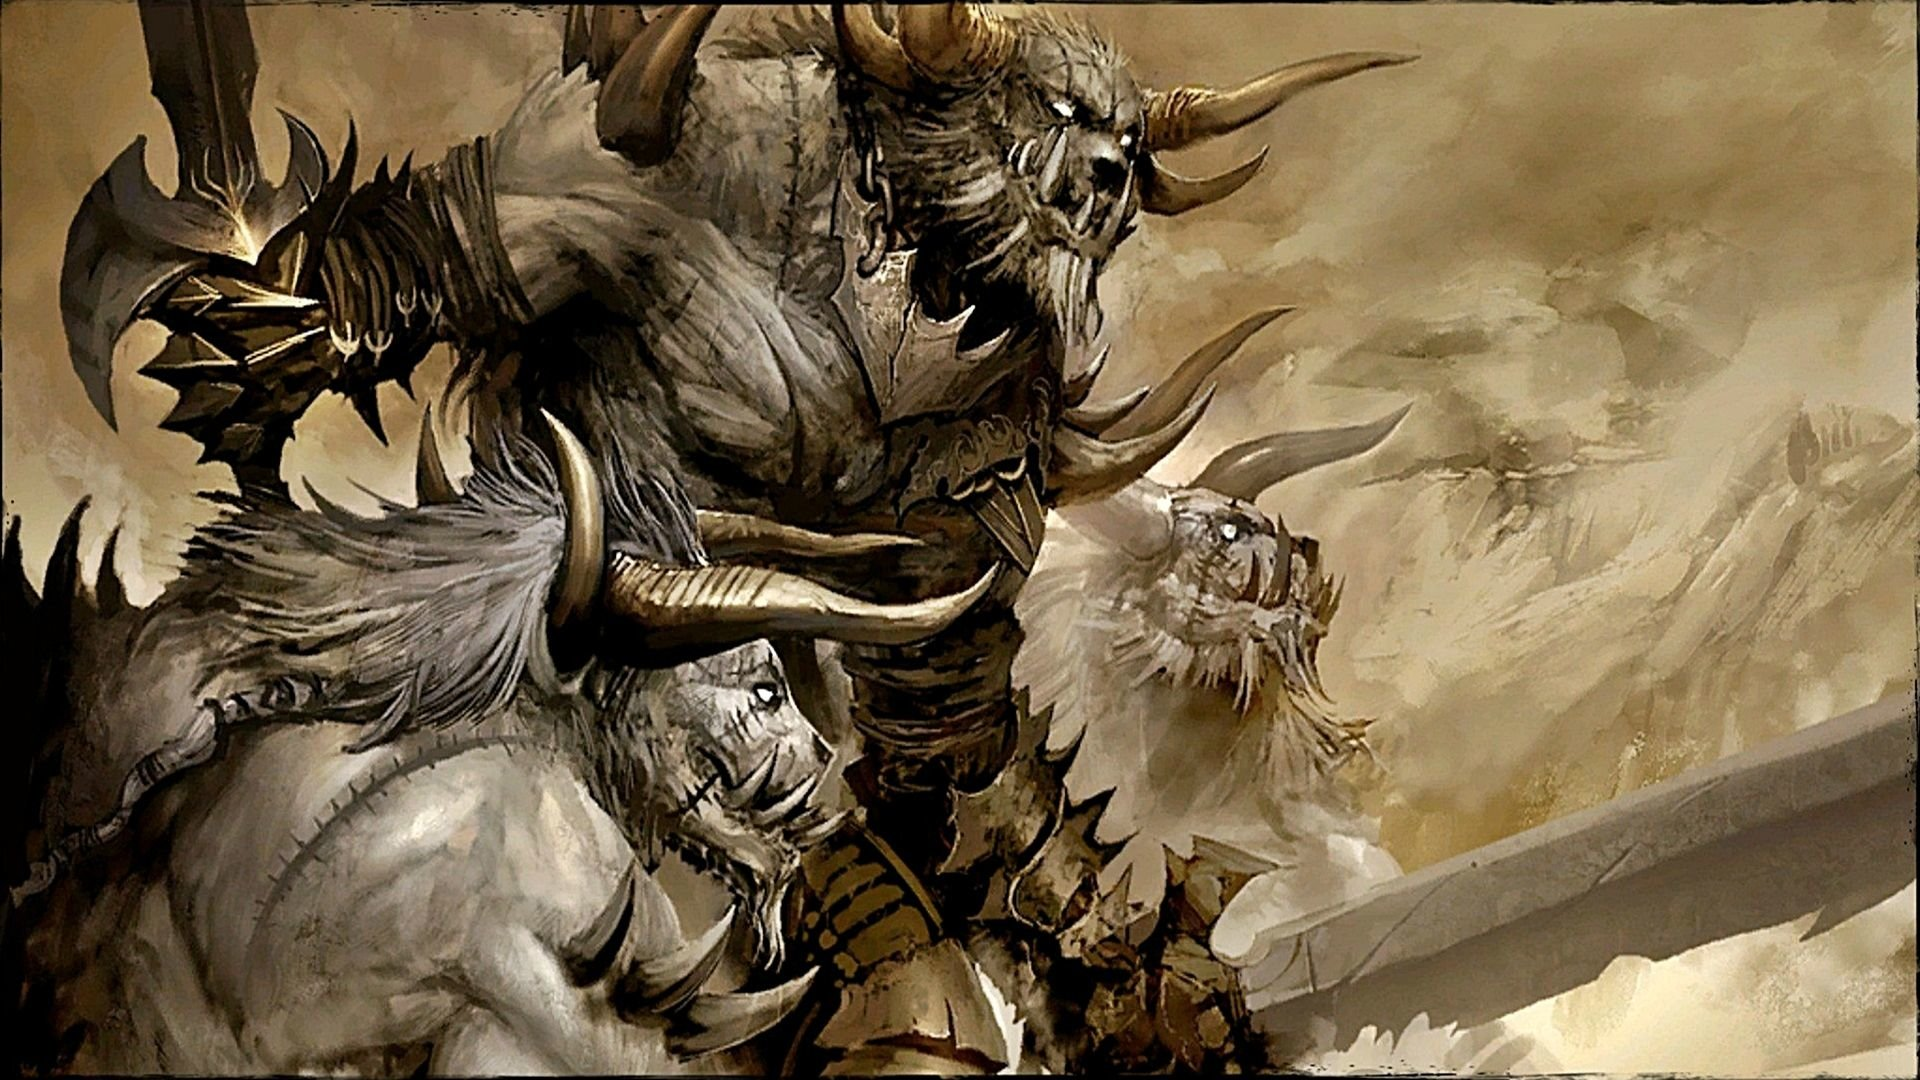 Guild Wars 2 Video Games Charr Wallpapers Hd Desktop: Guild Wars 2 Story Full HD Wallpaper And Background Image